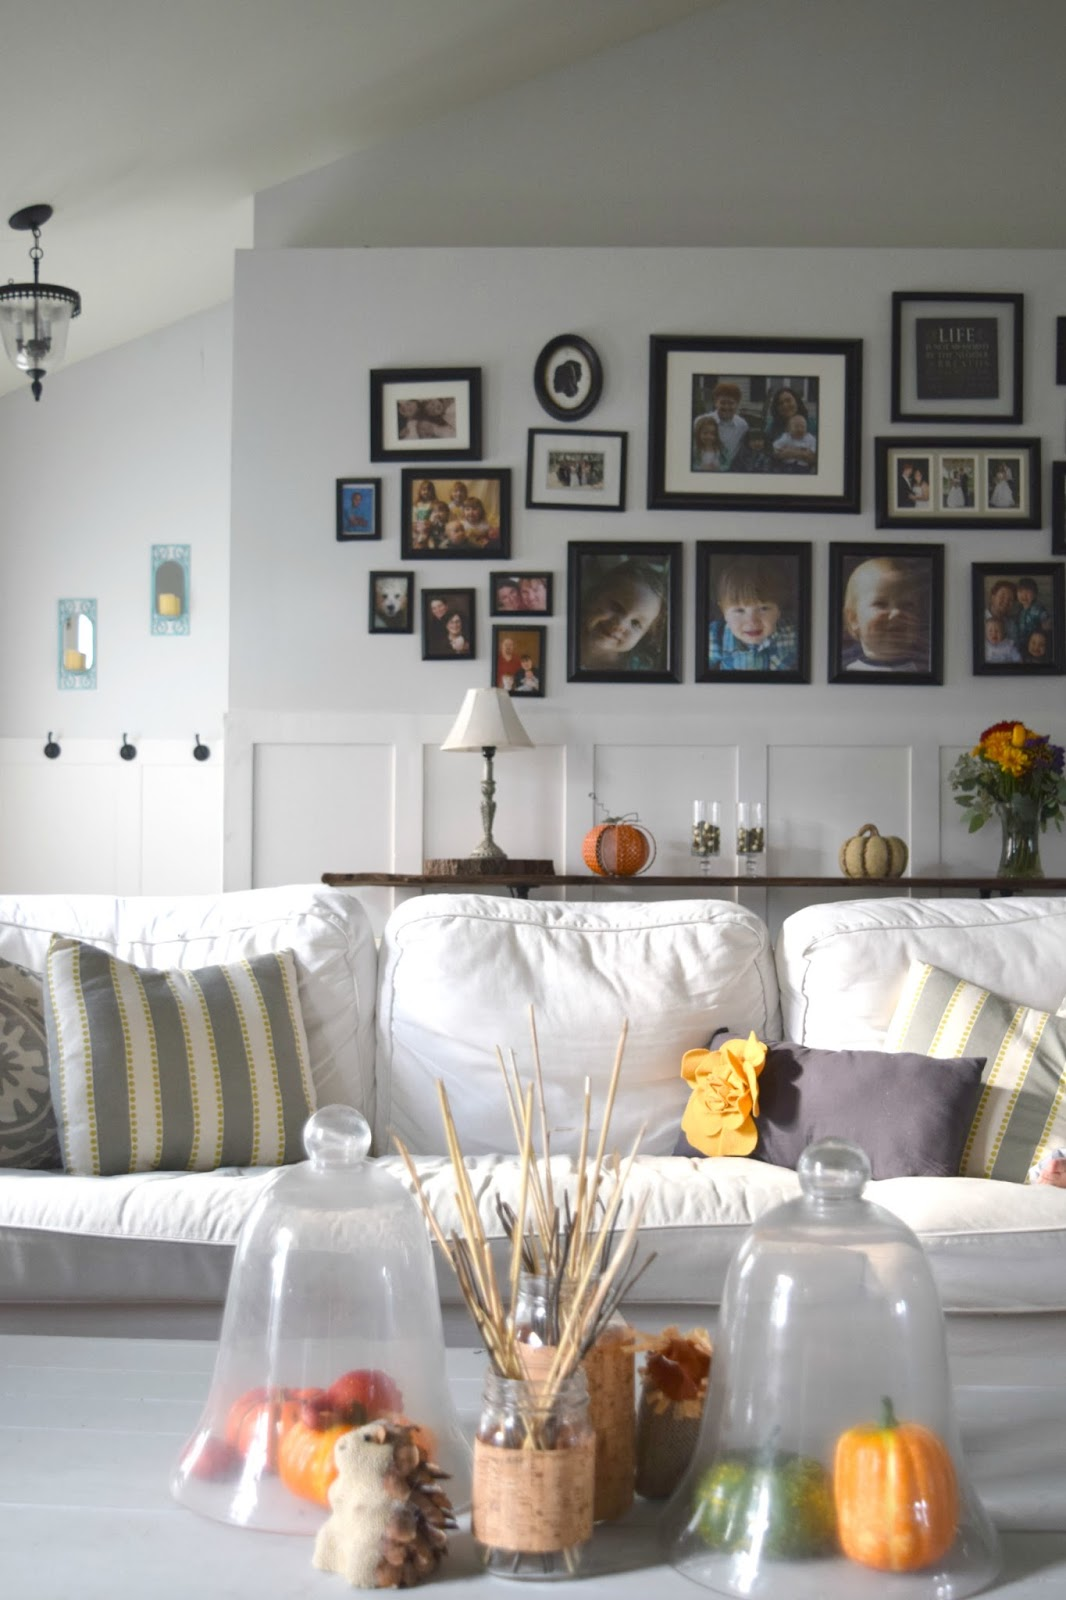 Urban Farmhouse Decorating Ideas With Home Interior Zen Decor With How To Decorate My House